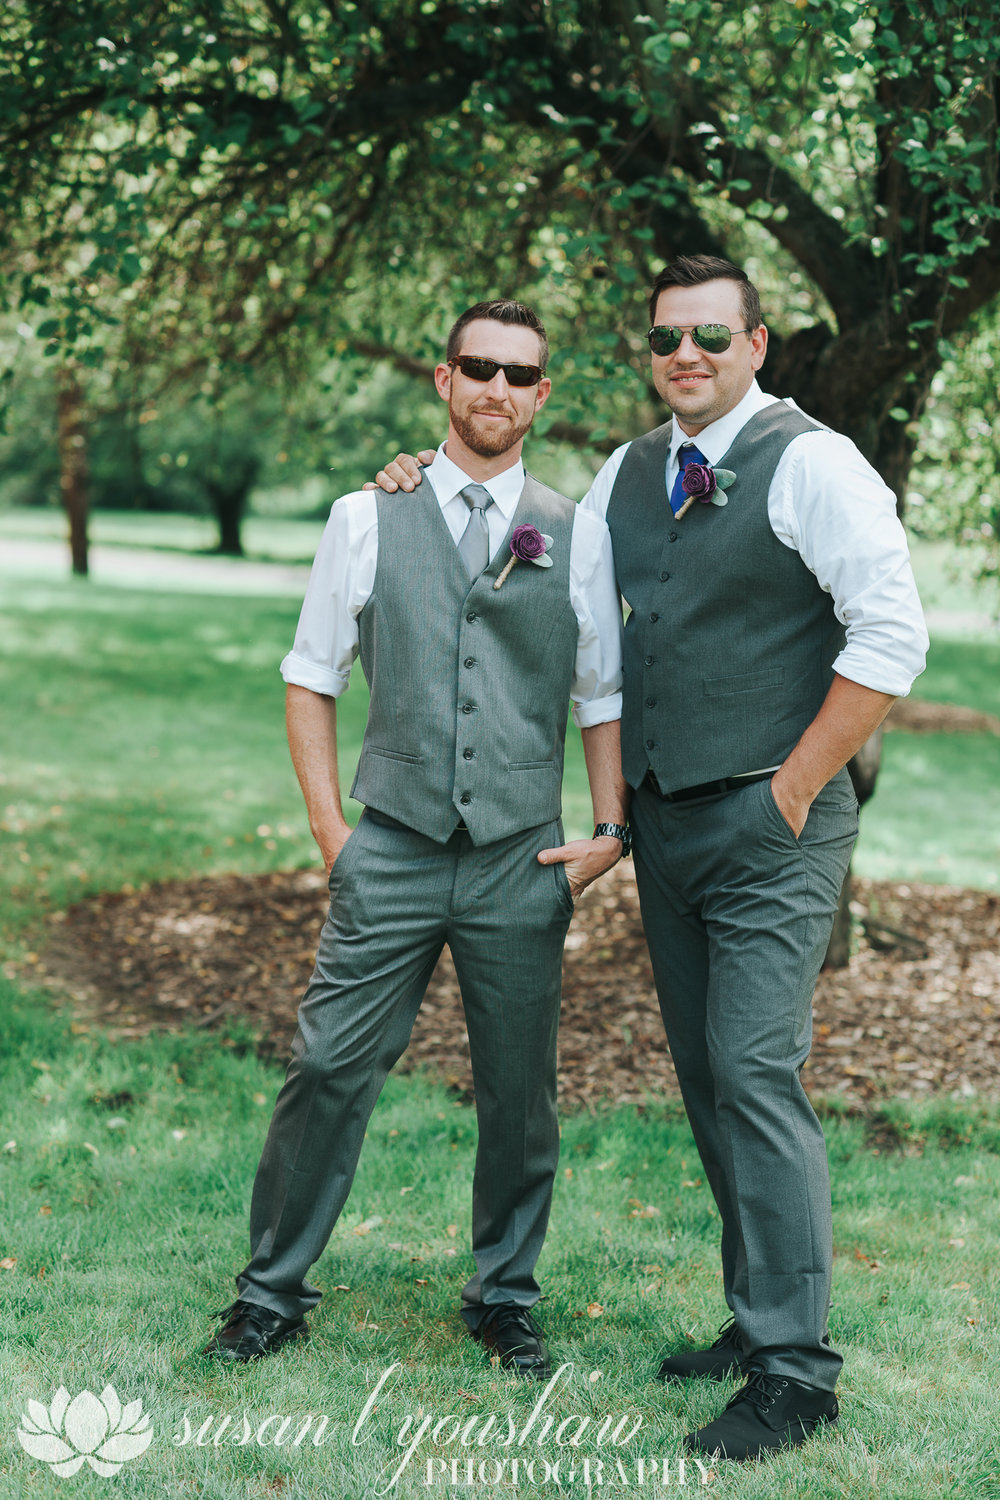 BLOG Kissy and Zane Diehl 07-14-2018 SLY Photography-80.jpg